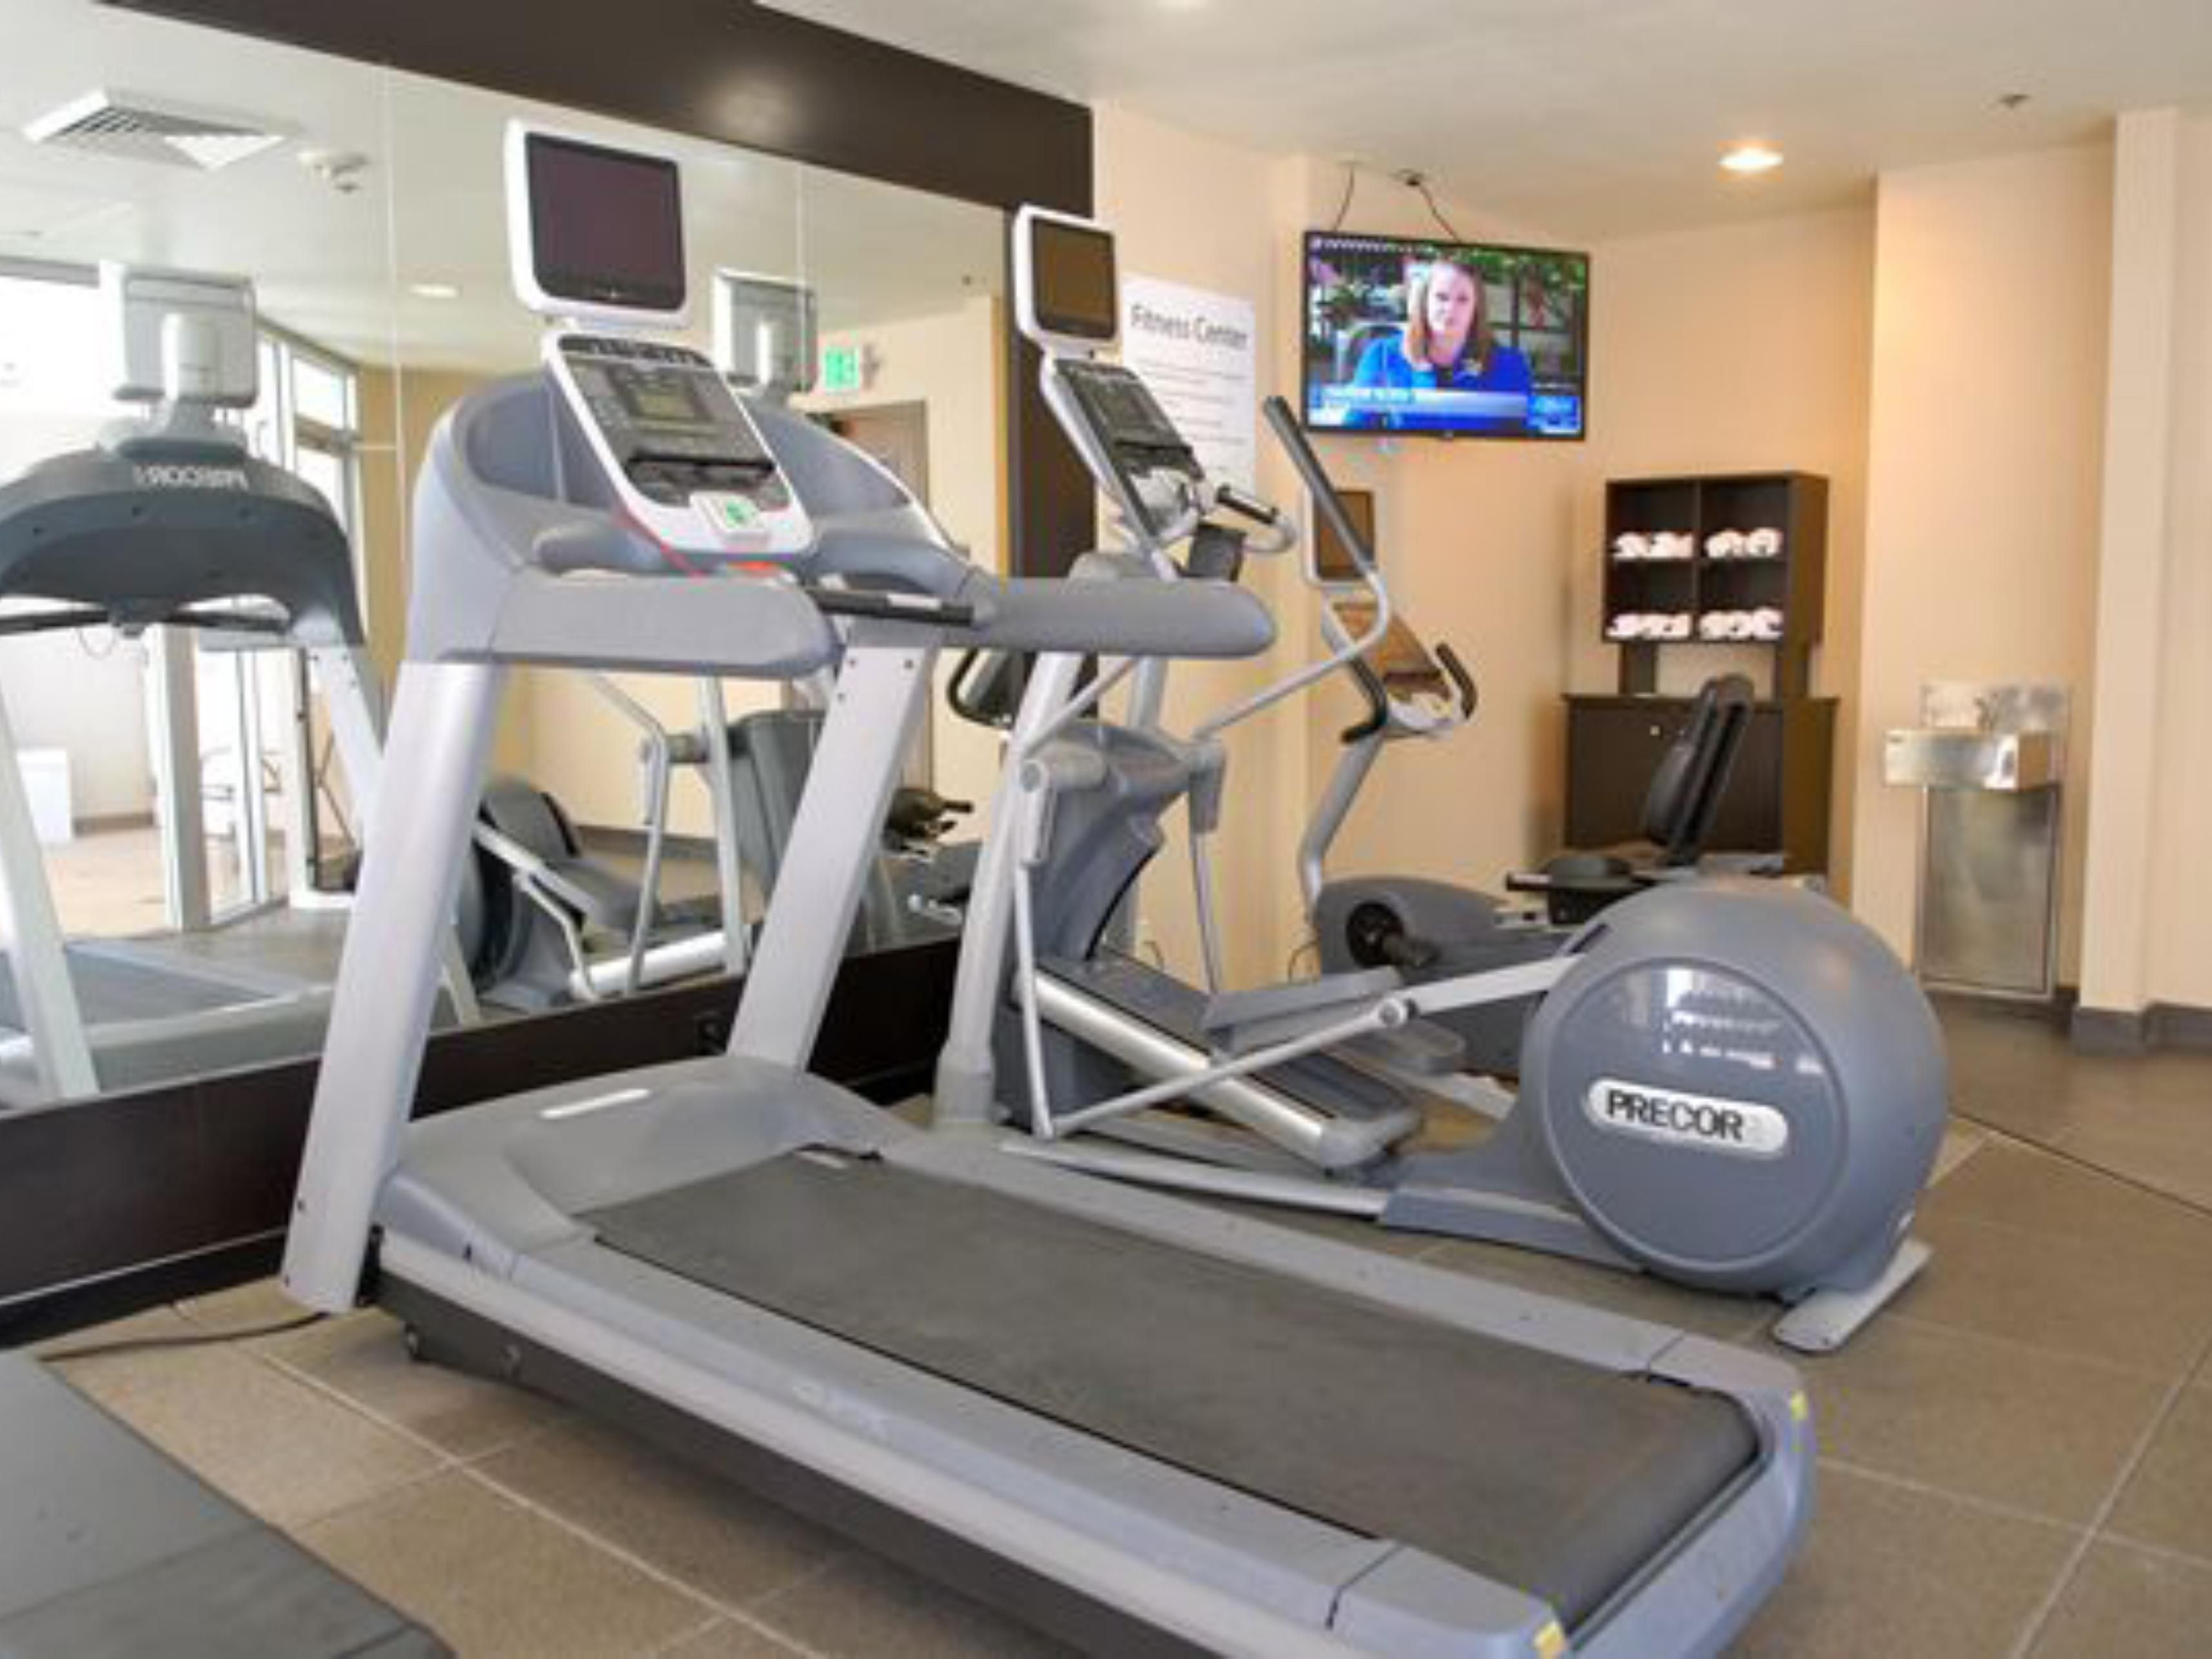 Holiday Inn Express Boise University Fitness Center